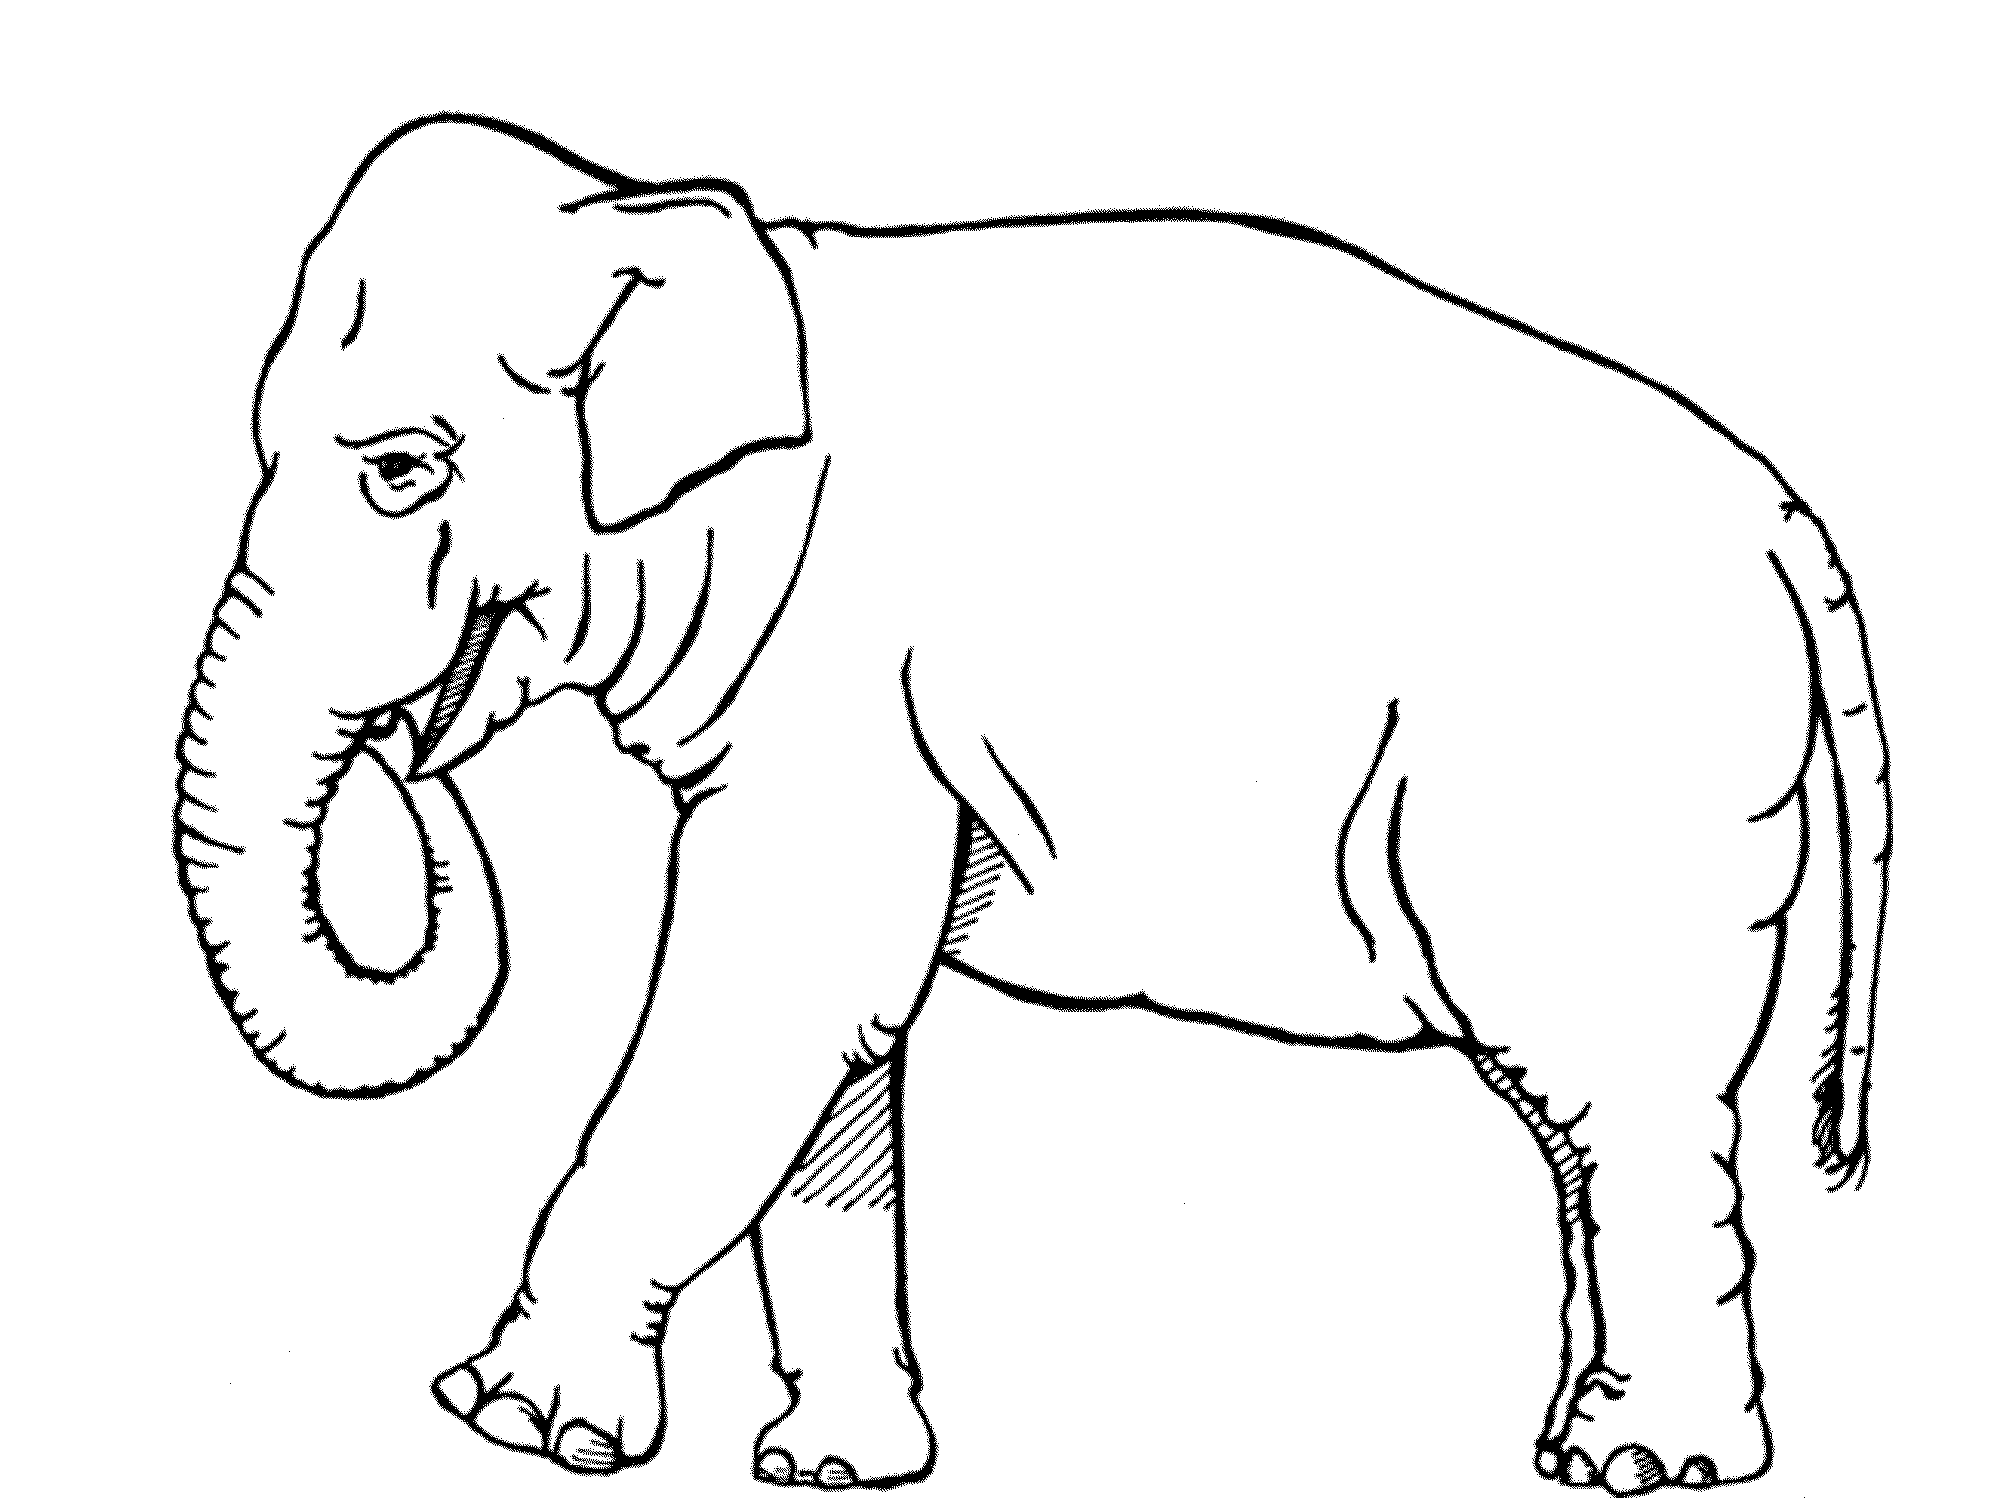 elephant images for colouring print download teaching kids through elephant coloring colouring elephant images for